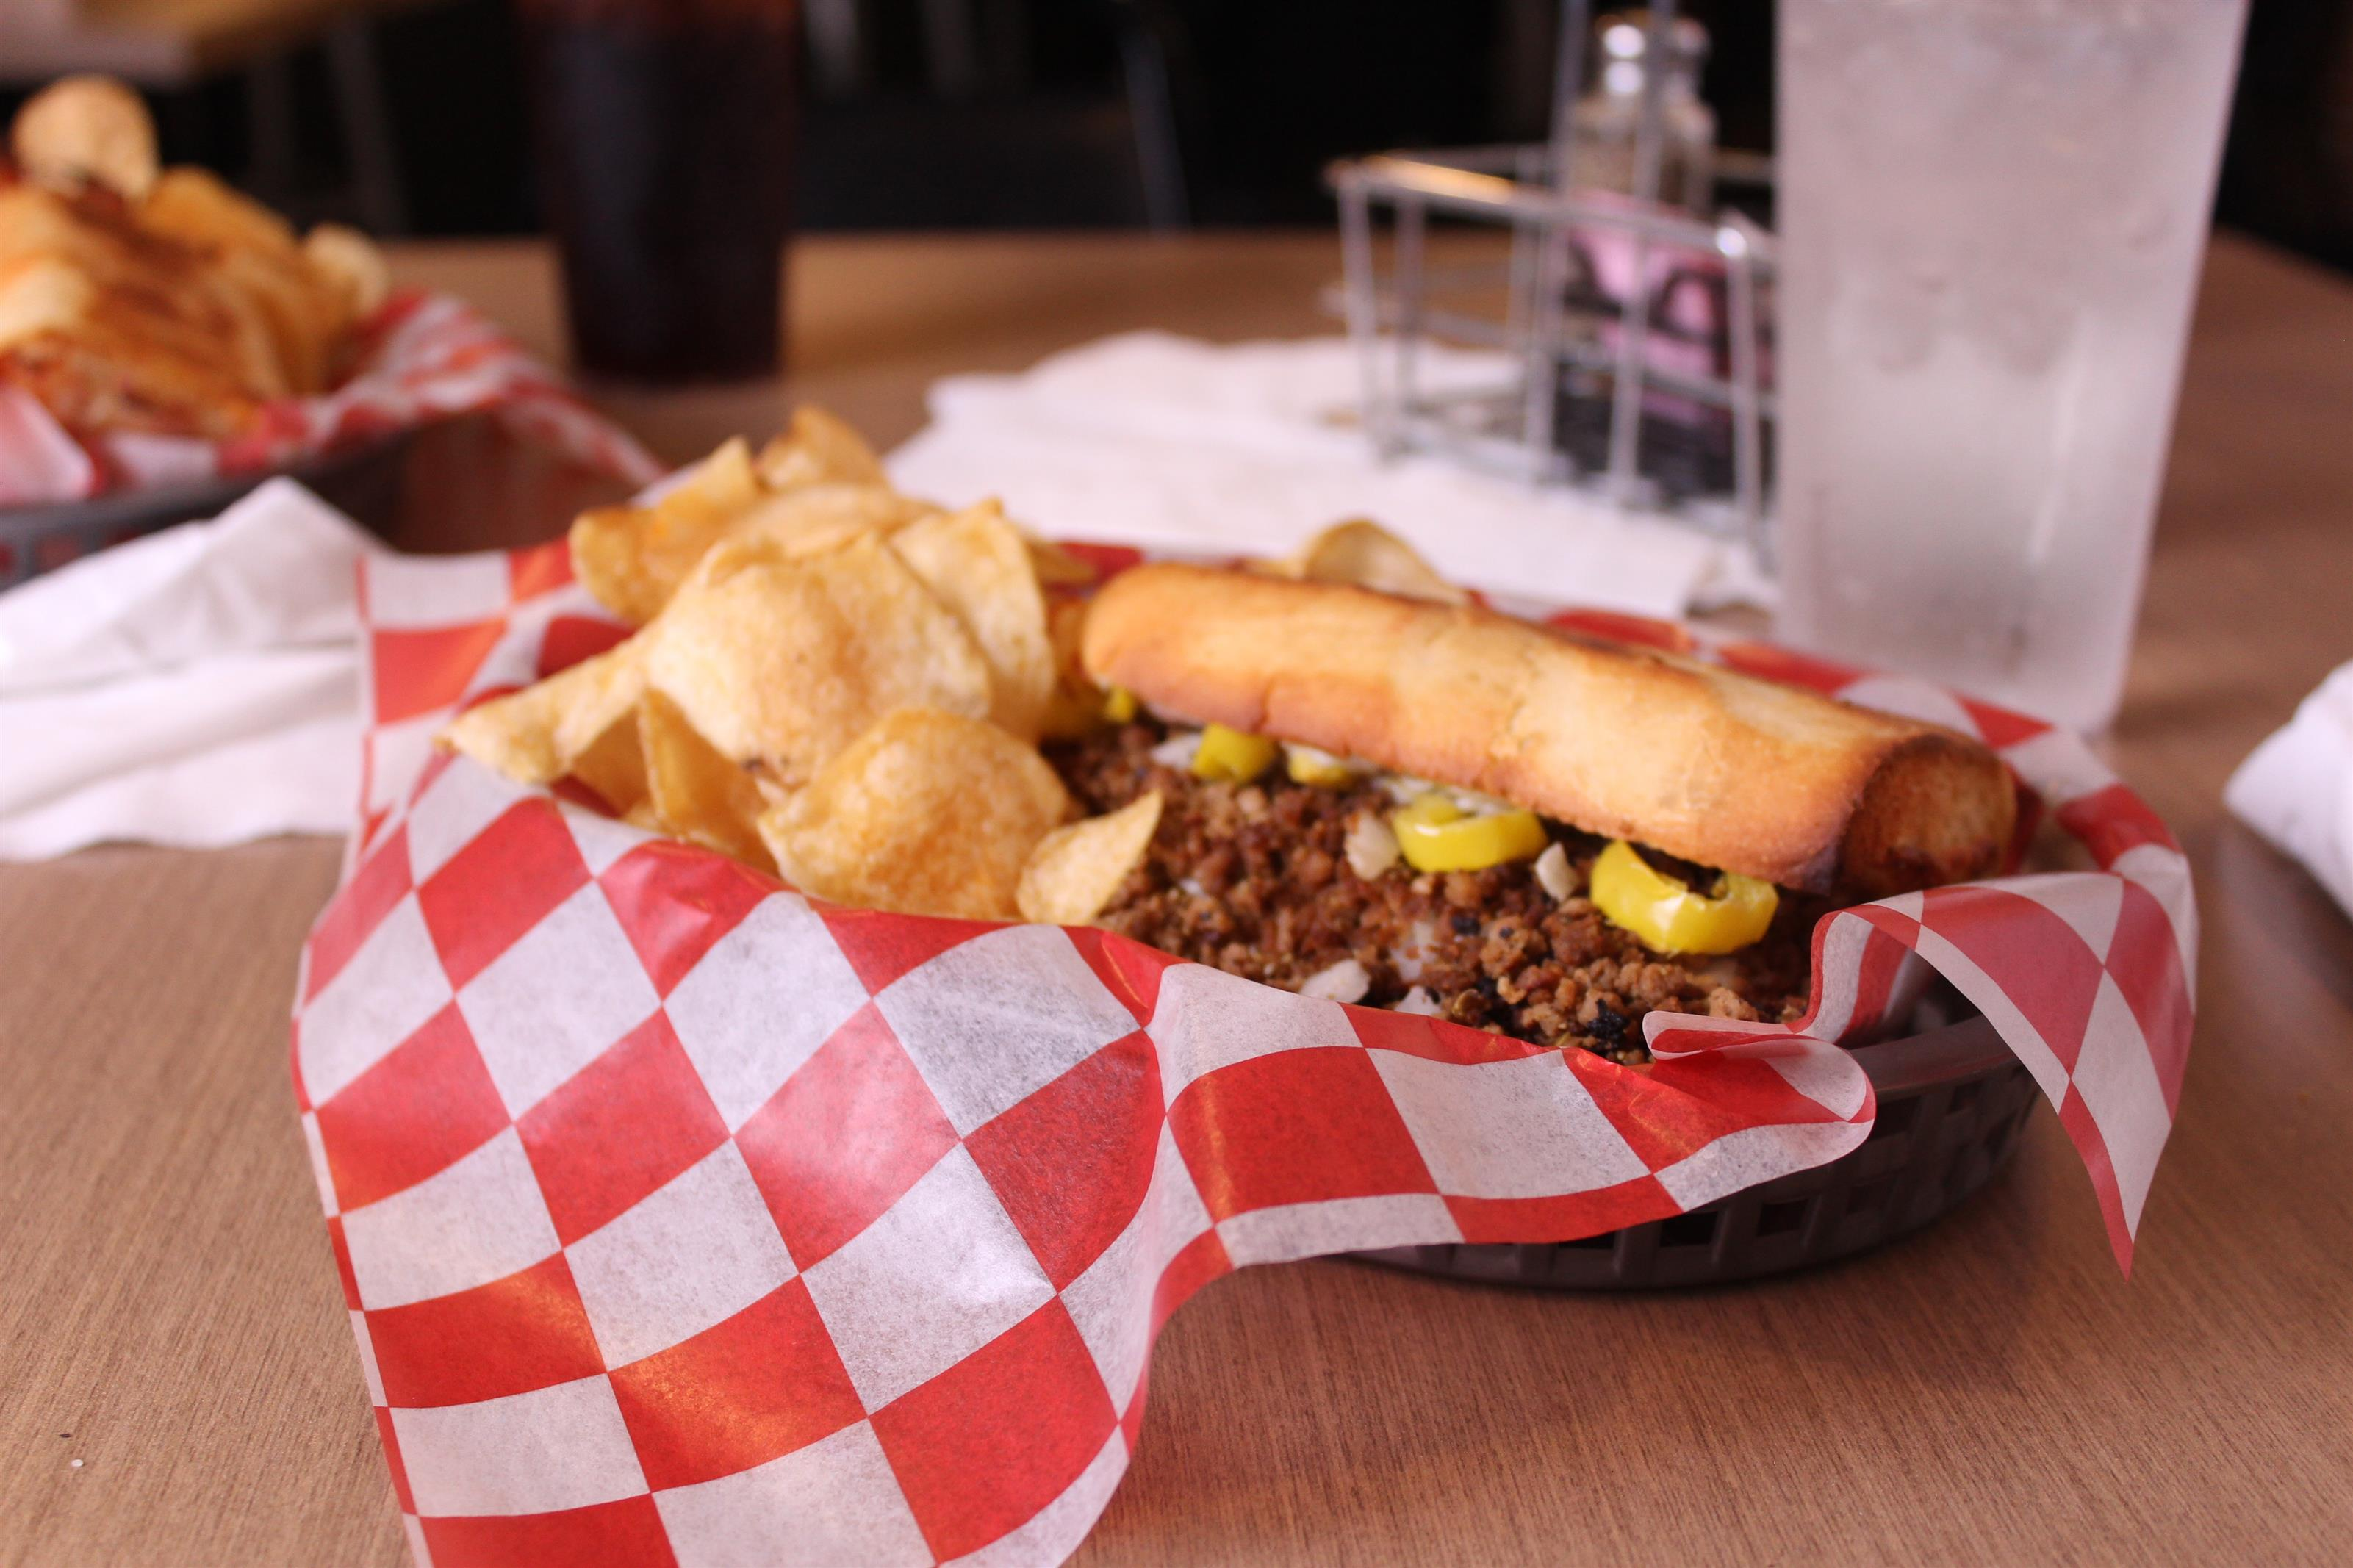 philly cheesesteak with chips in a basket with cola and water